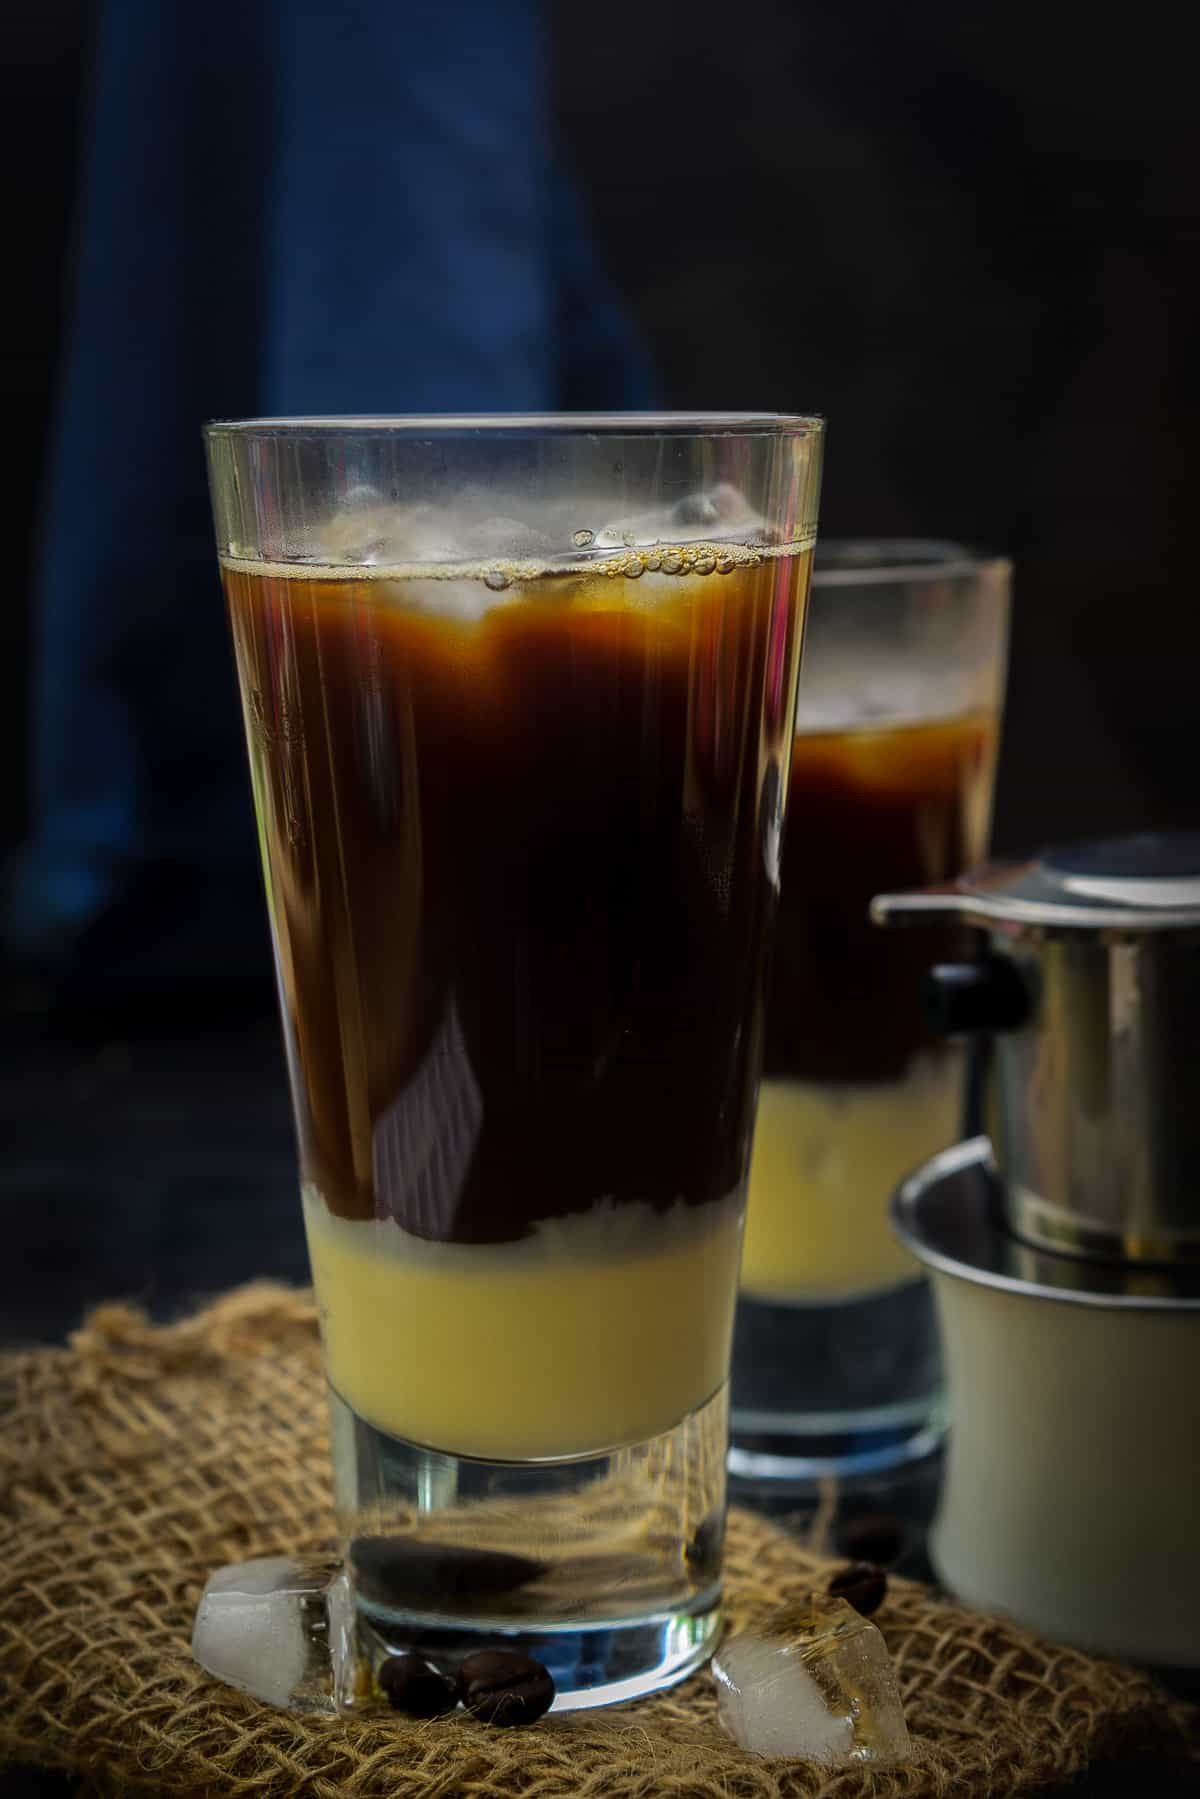 Condensed milk added in the glass.